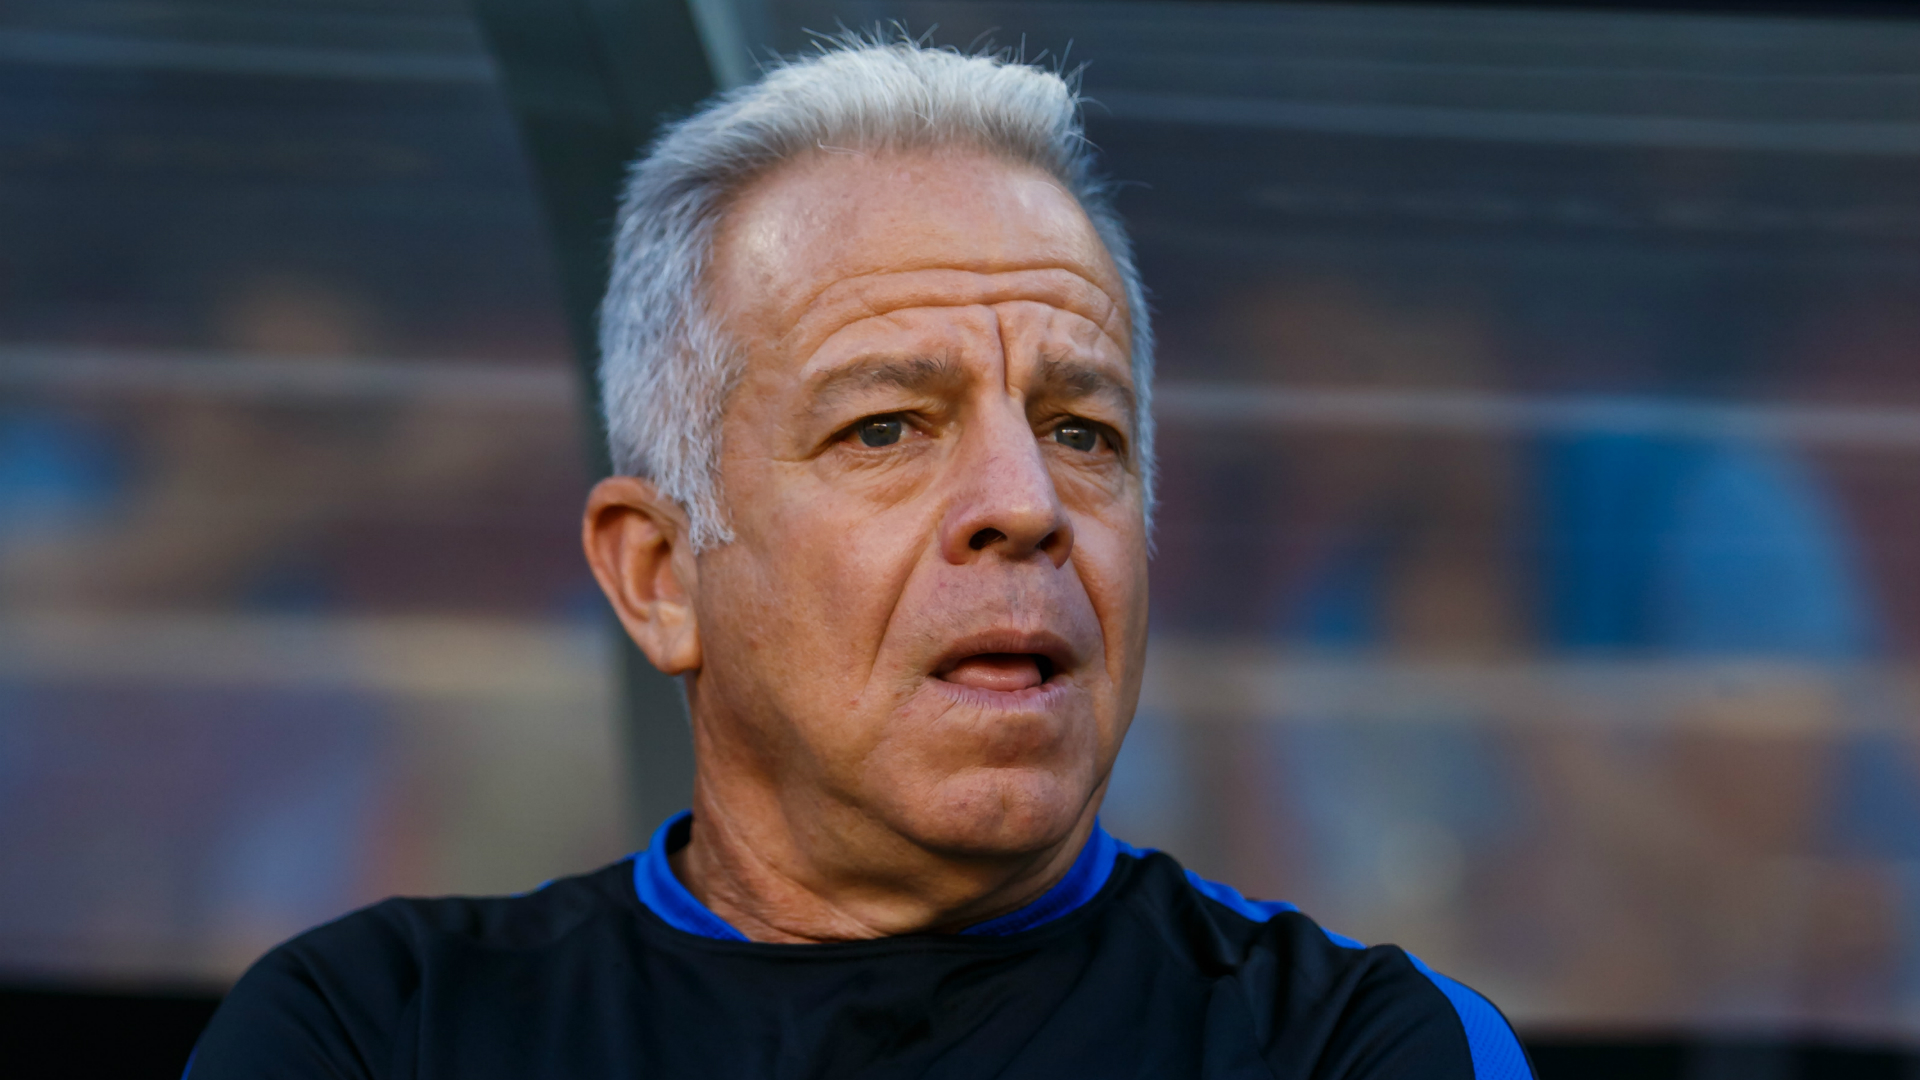 Dave Sarachan's contract with US Soccer extended through December